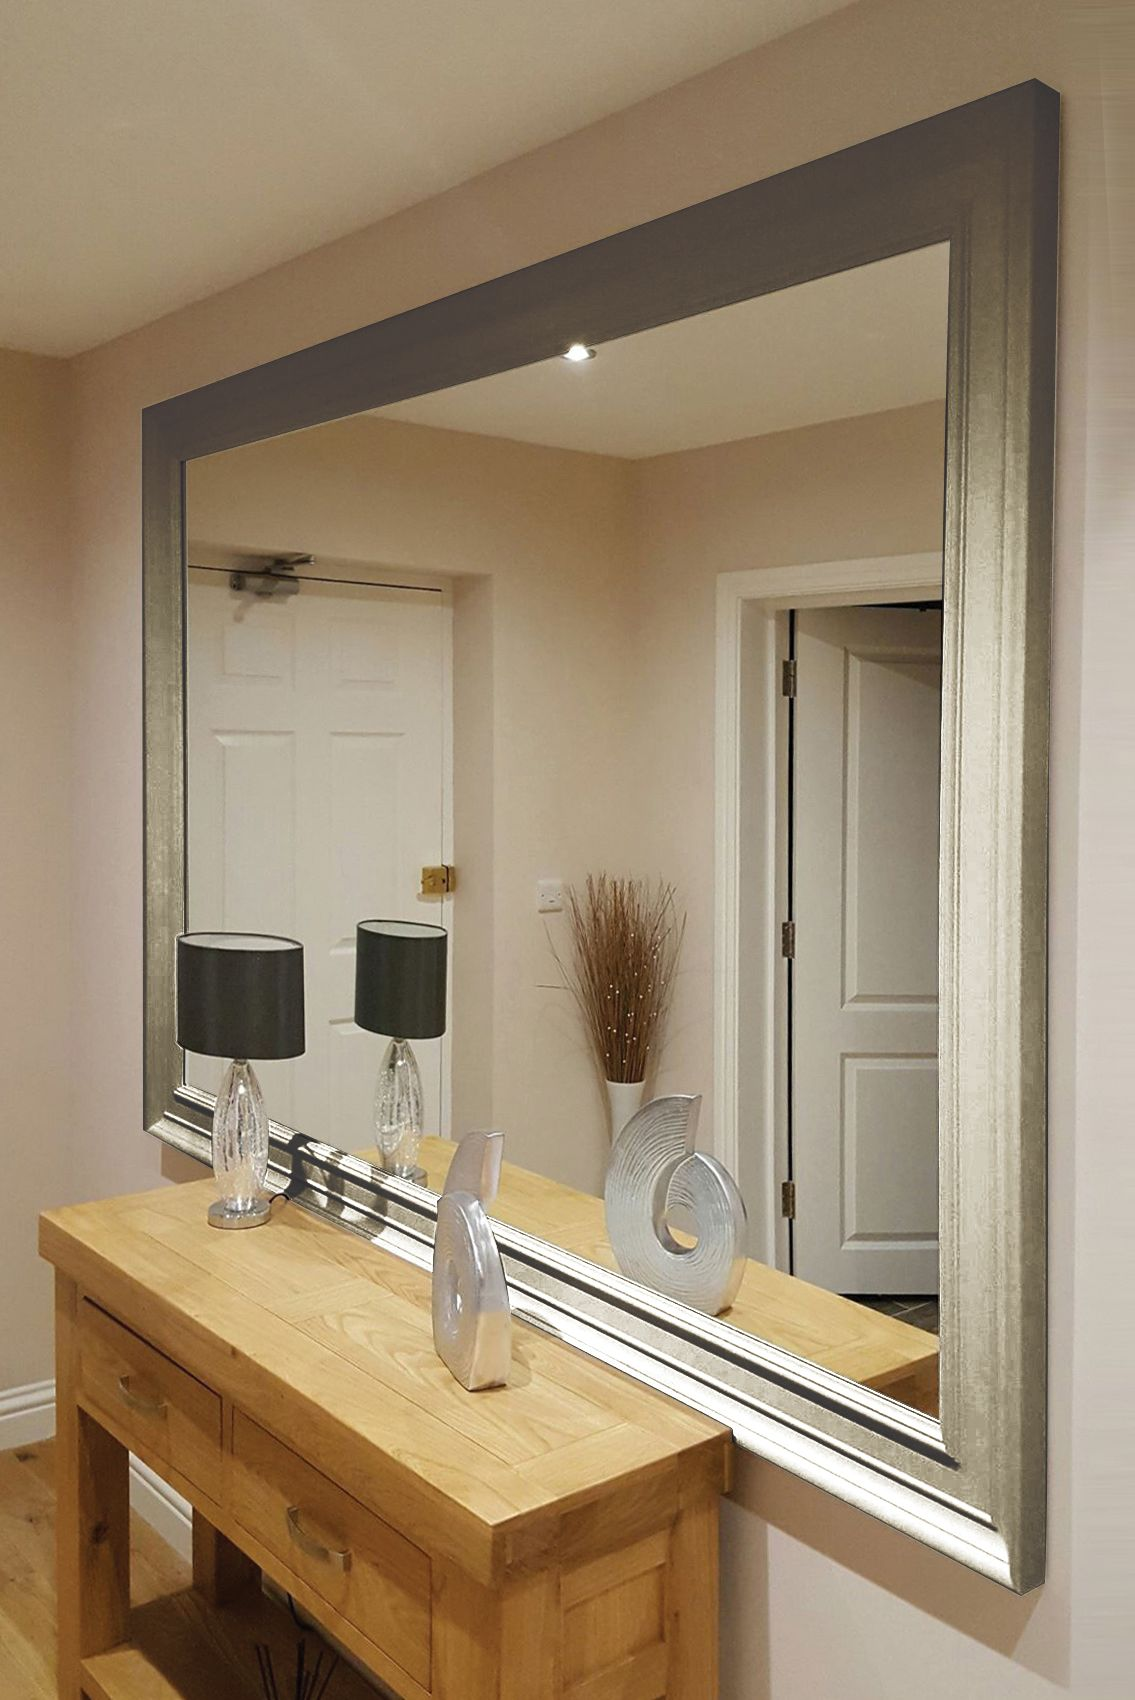 Oxford Extra Large Silver Mirror 206x145cm Extra Large Wall Mirrors Large White Mirror Mirror Wall